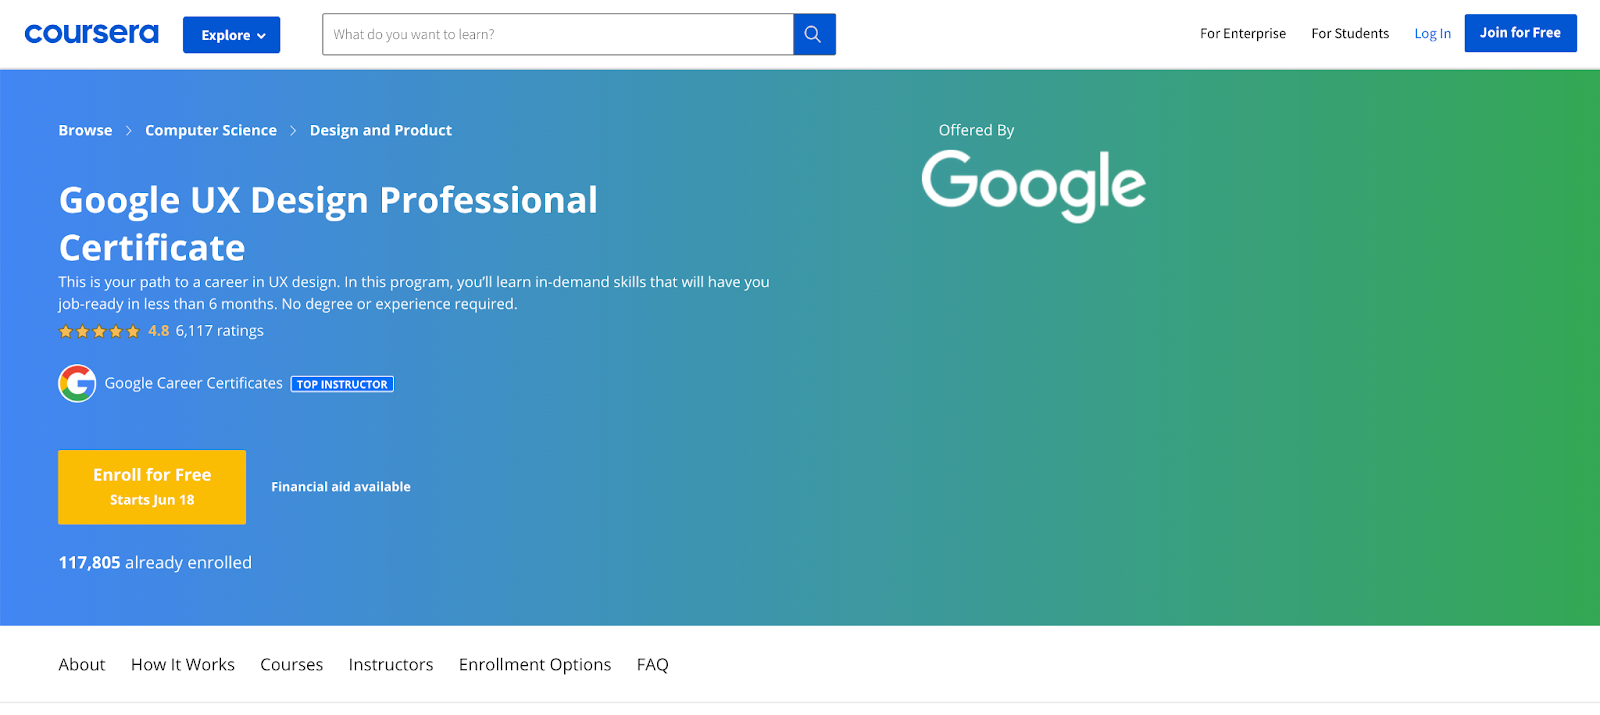 Landing page for the Google UX Design Certificate course on Coursera.